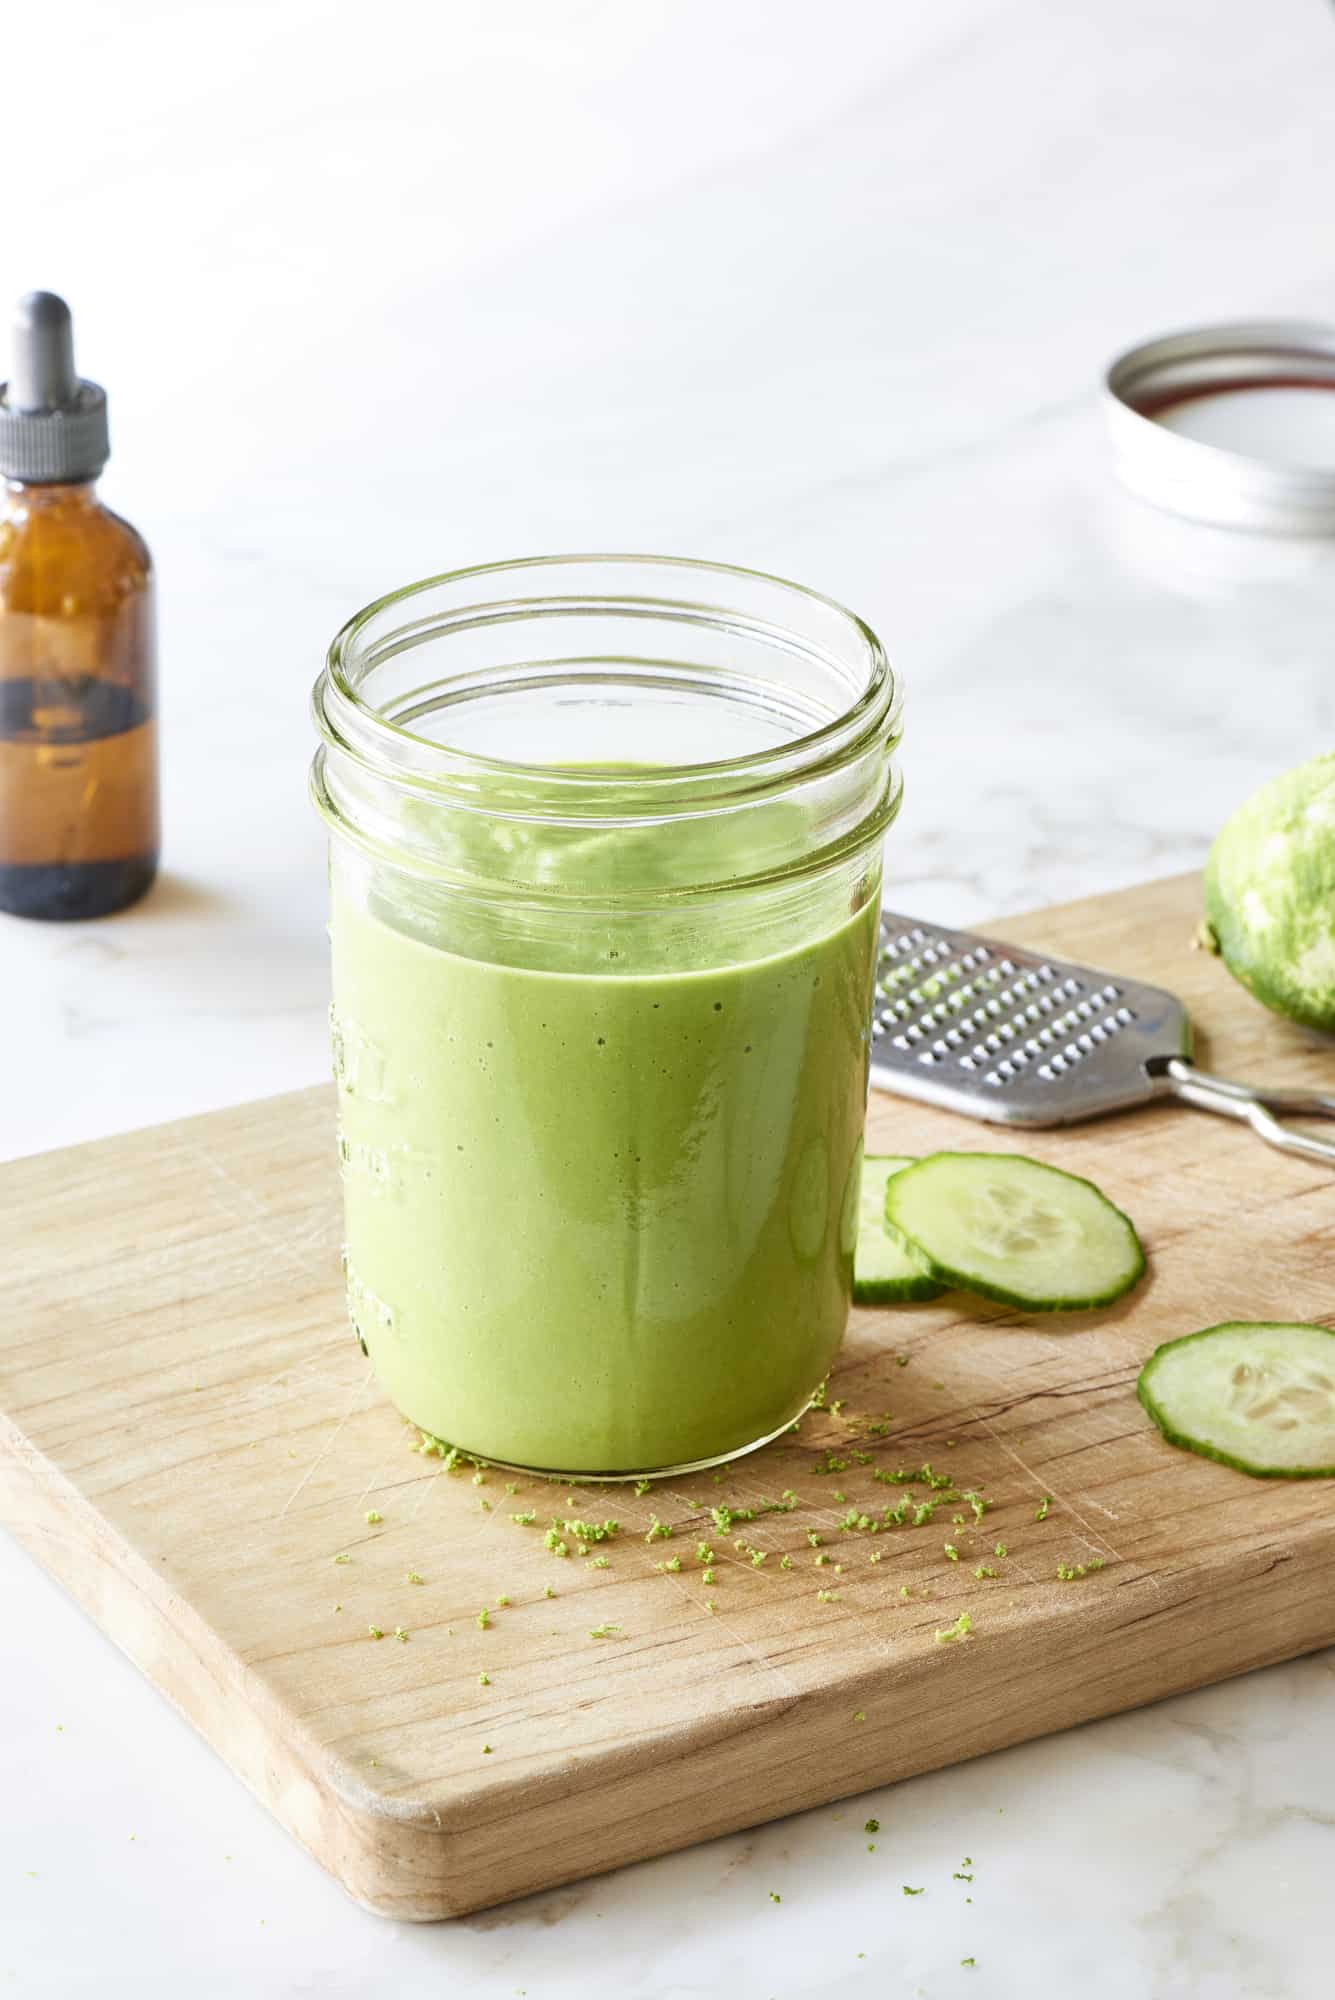 Lime Alkaline Glowing Green Smoothie - The Blender Girl